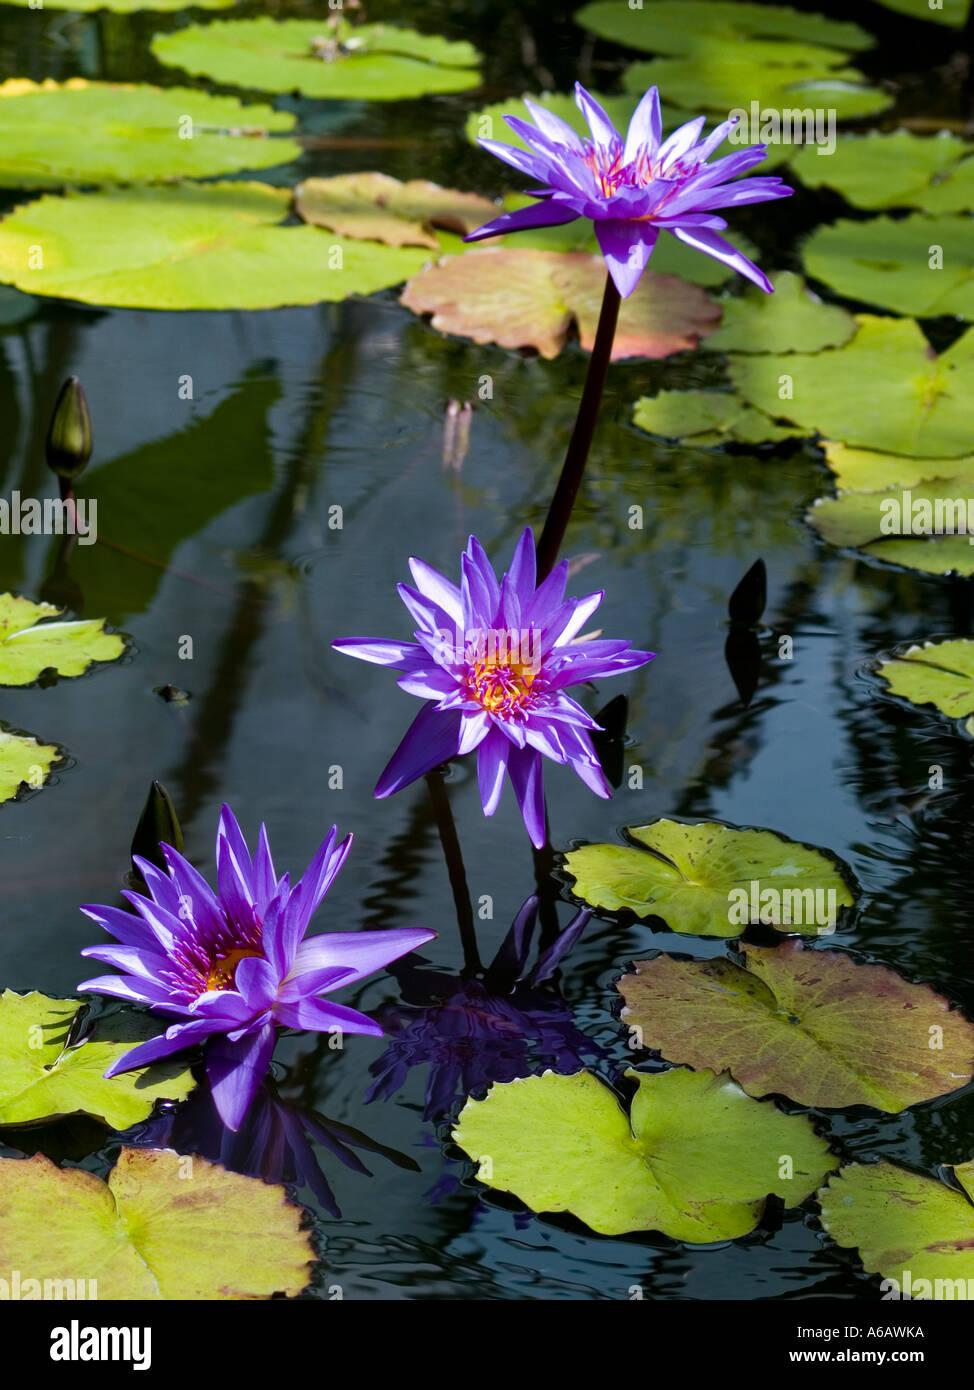 3 purple water lilies and lily pads nymphaea subtropical aquatic stock photo 6581497 alamy. Black Bedroom Furniture Sets. Home Design Ideas